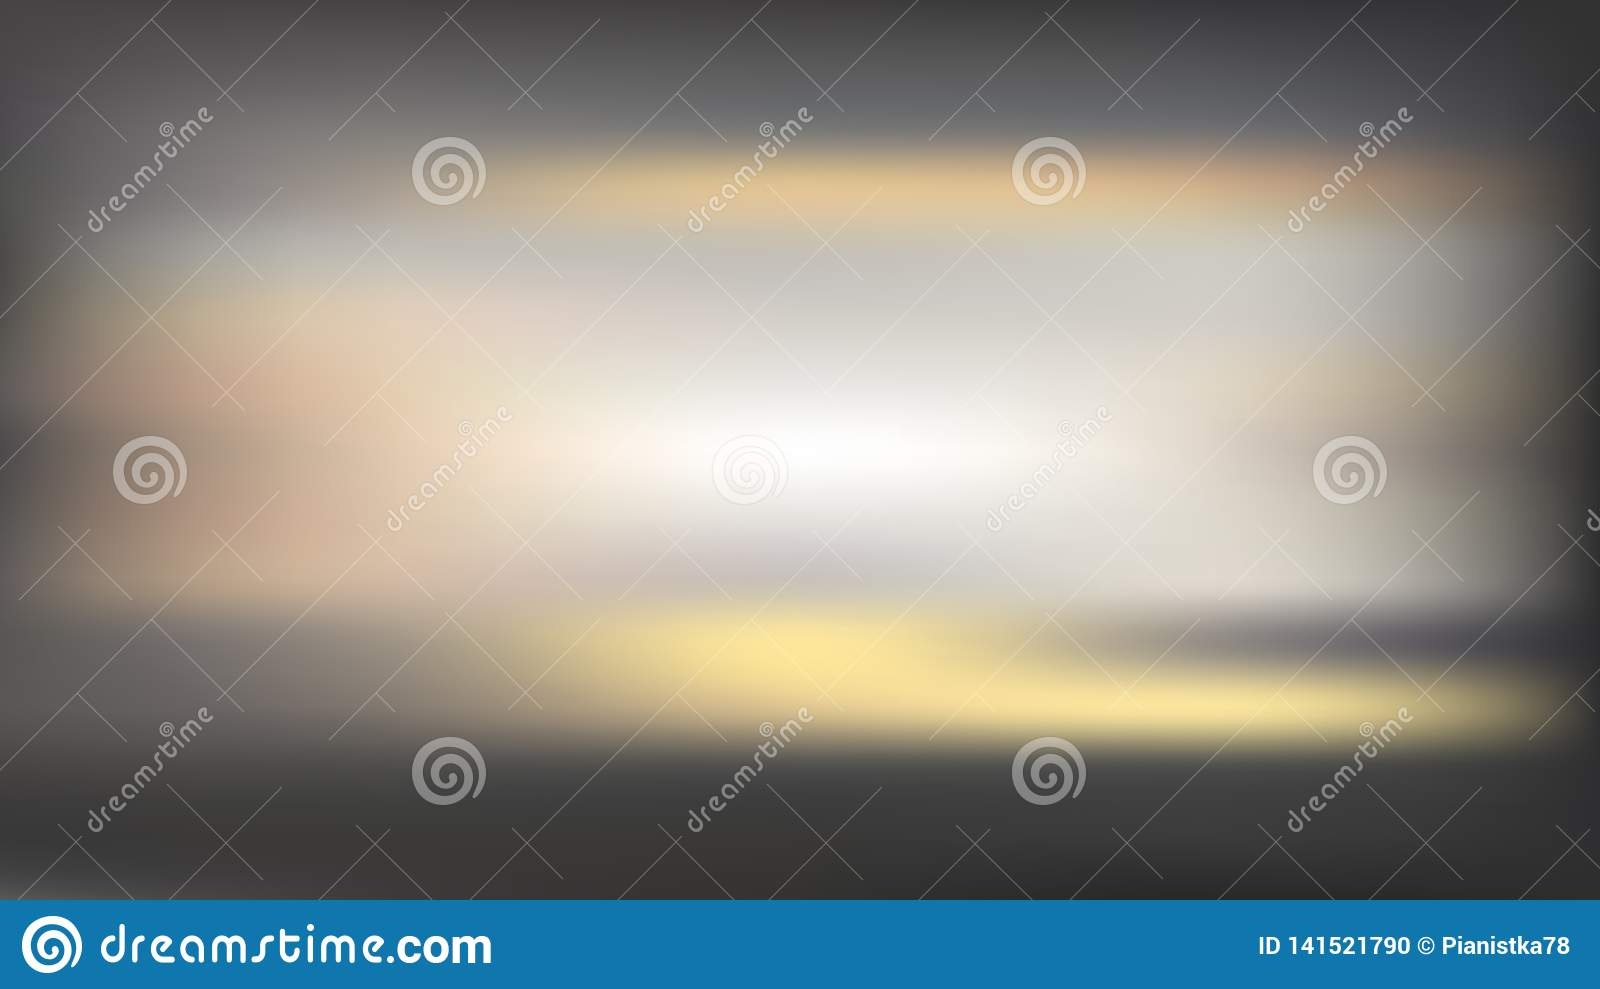 Vector blur baclkground with horizontal golden lines. Sunset